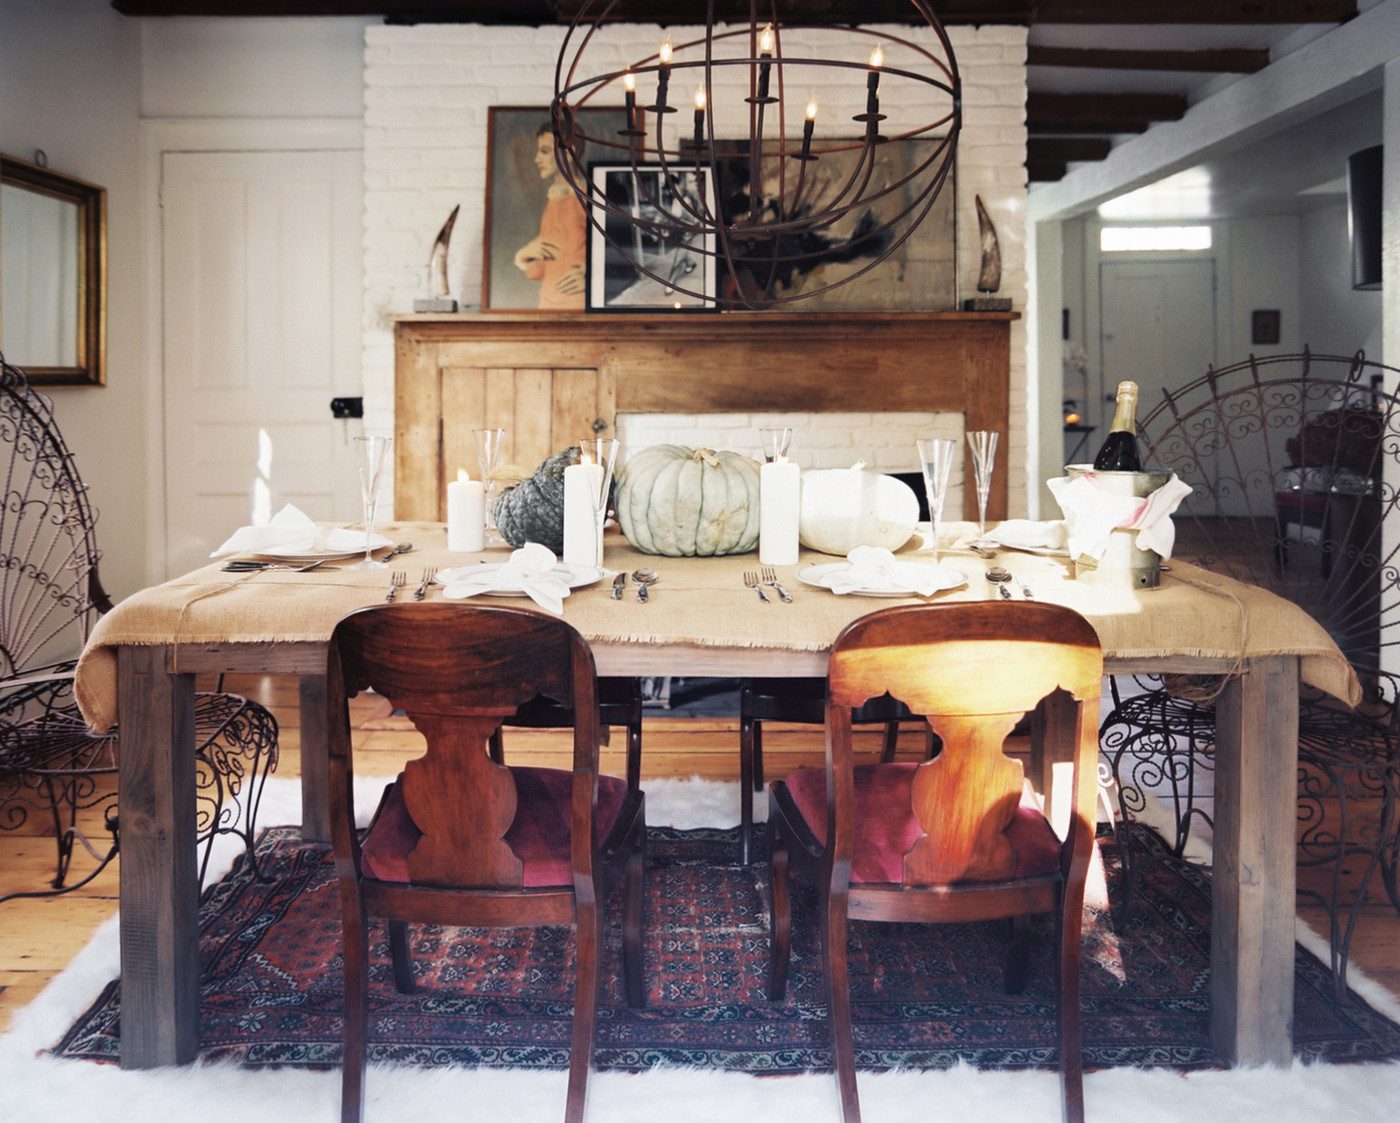 rustic holiday decor photos design ideas remodel and